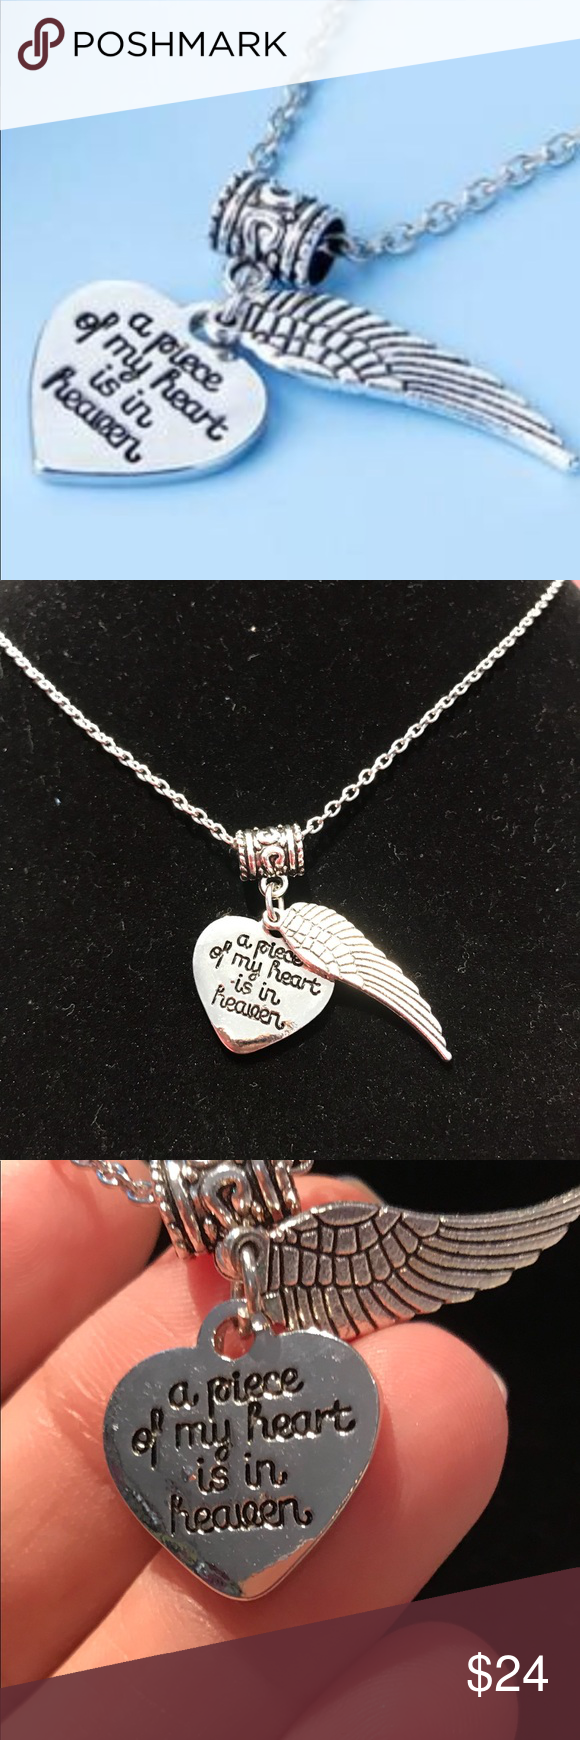 "🙏🏻 Love Necklace 🙏🏻 Beautiful piece ... 🙏🏻""A Piece Of My Heart Is In Heaven""🙏🏻 just a pretty piece ... 18"" chain w/ 2"" extender  Material: Stainless Steel Jewelry Necklaces"